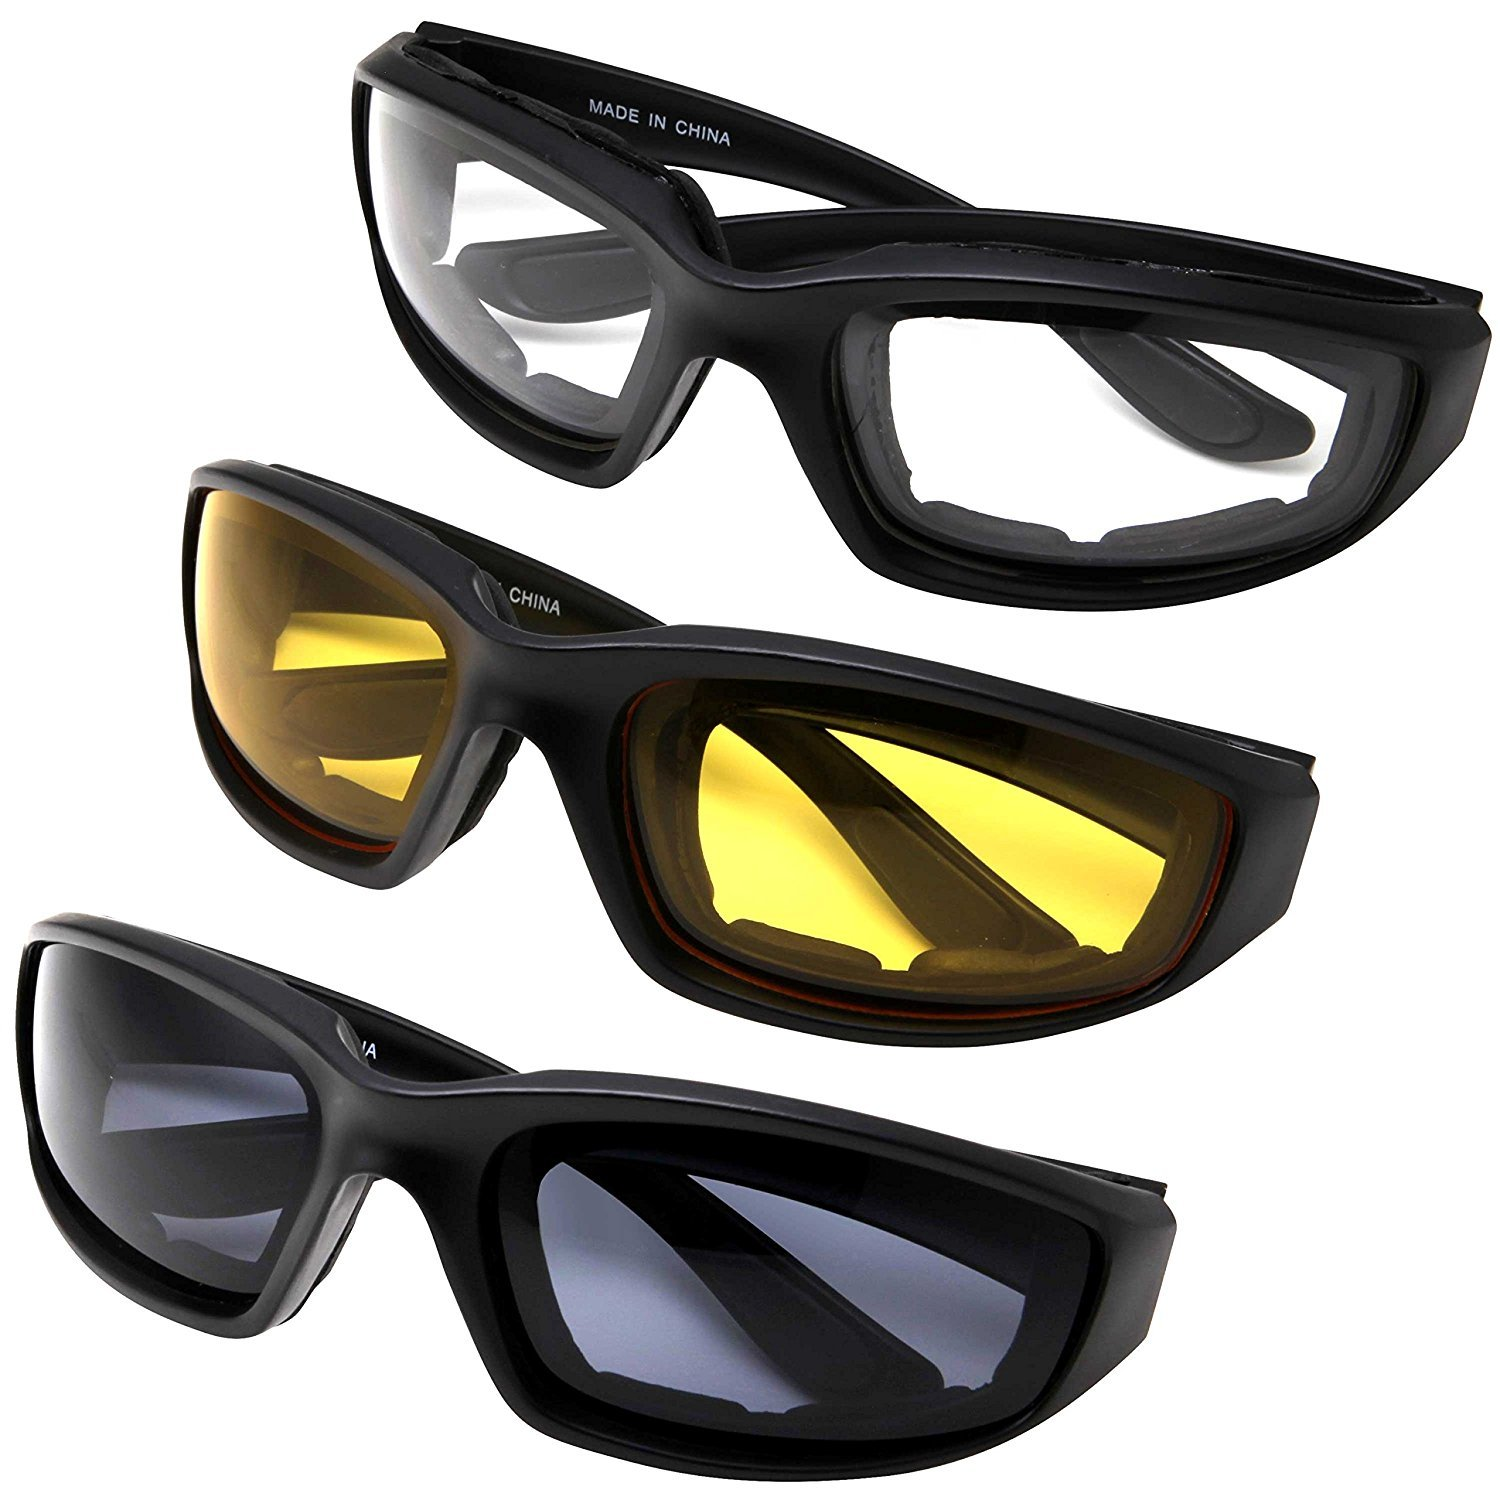 All Weather Protective Motorcycle Riding Goggle Glasses 3 Pack Set (Assortment Pack)